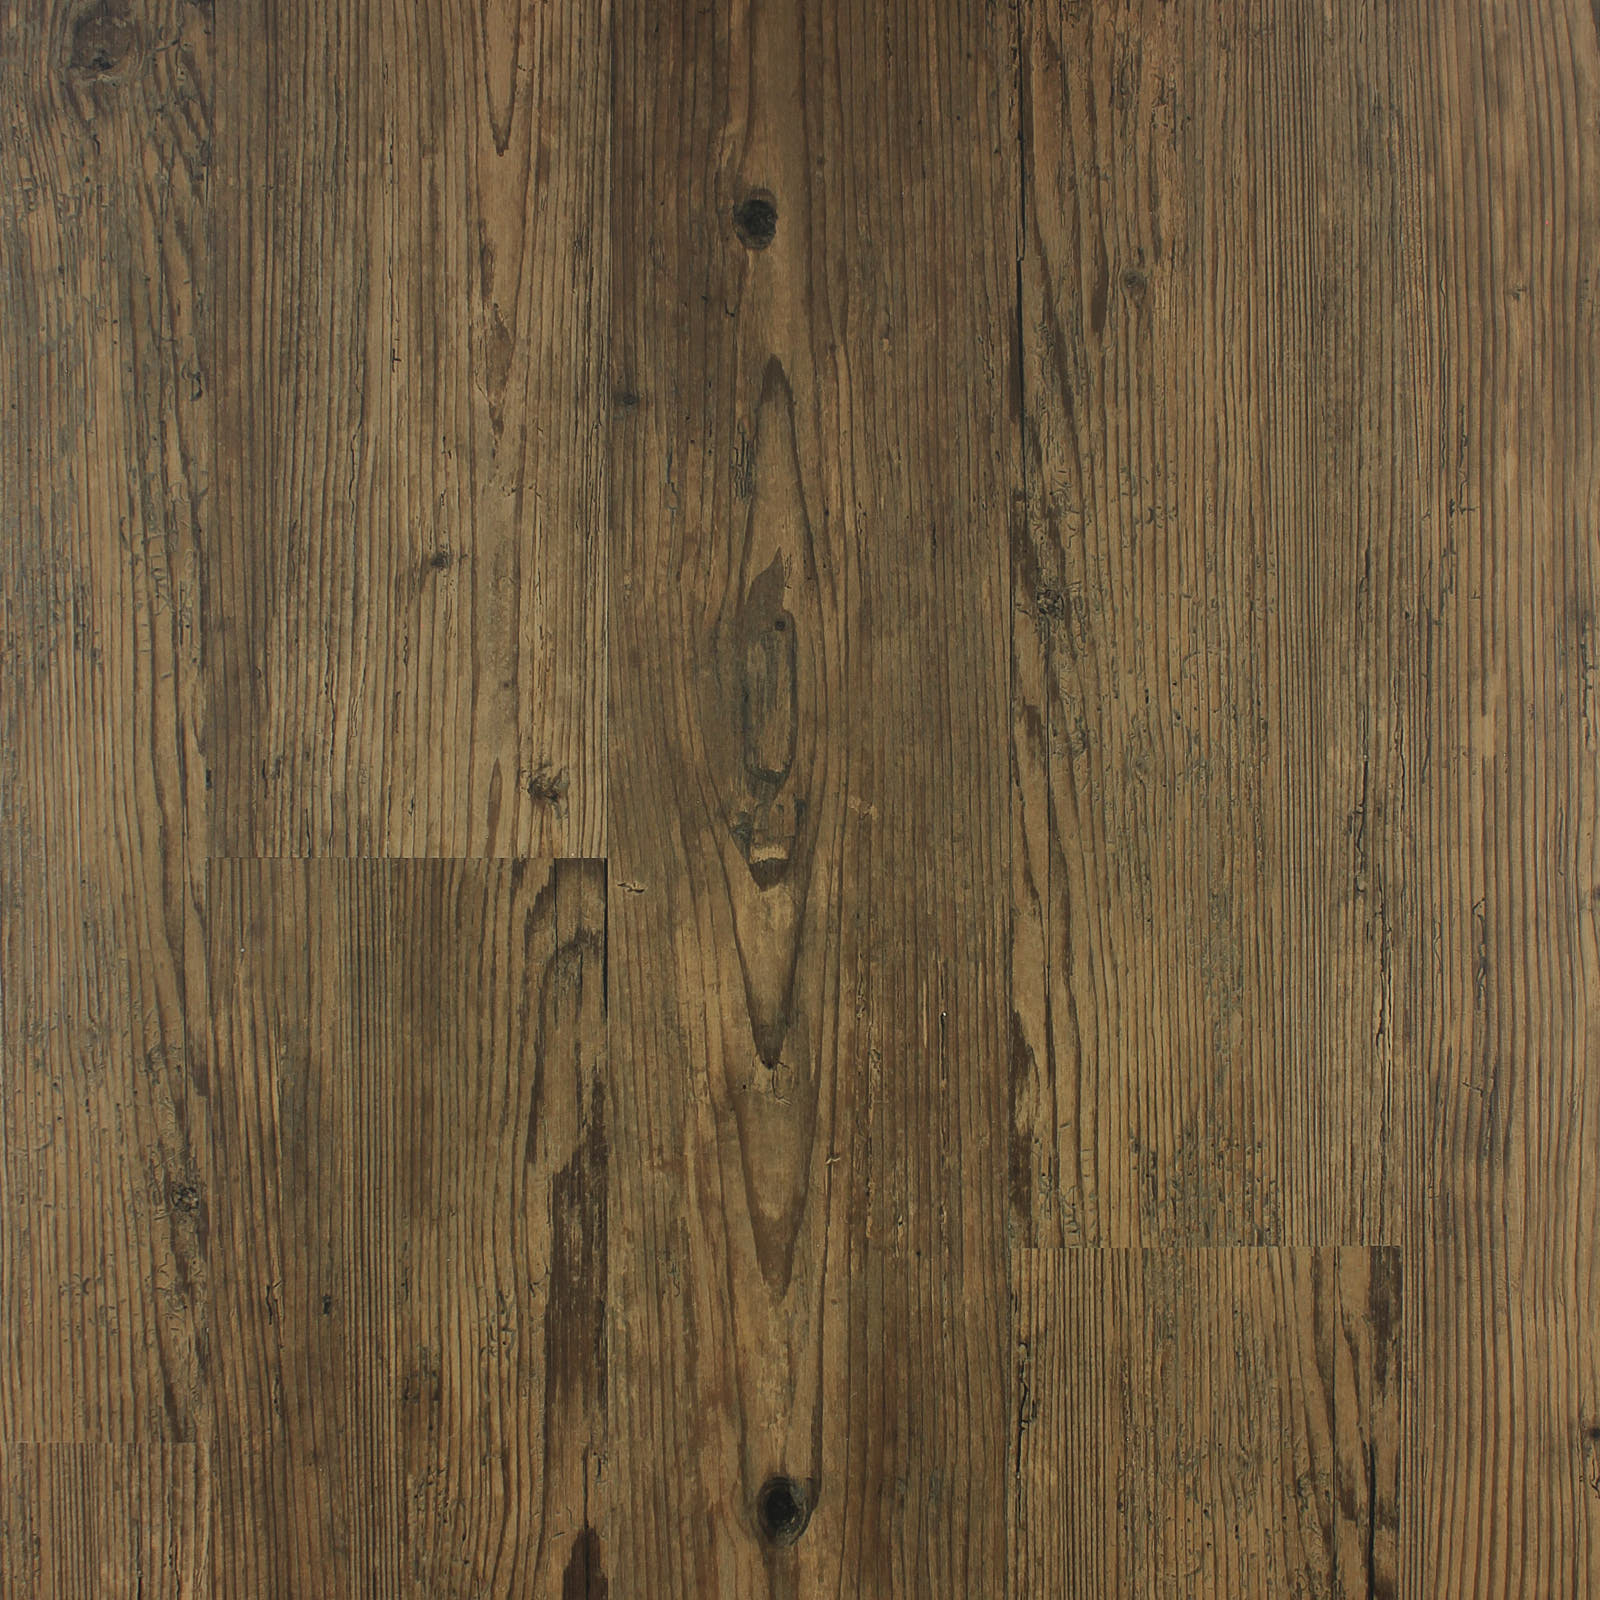 AquaLock Pirate Ship Engineered Vinyl Plank Flooring